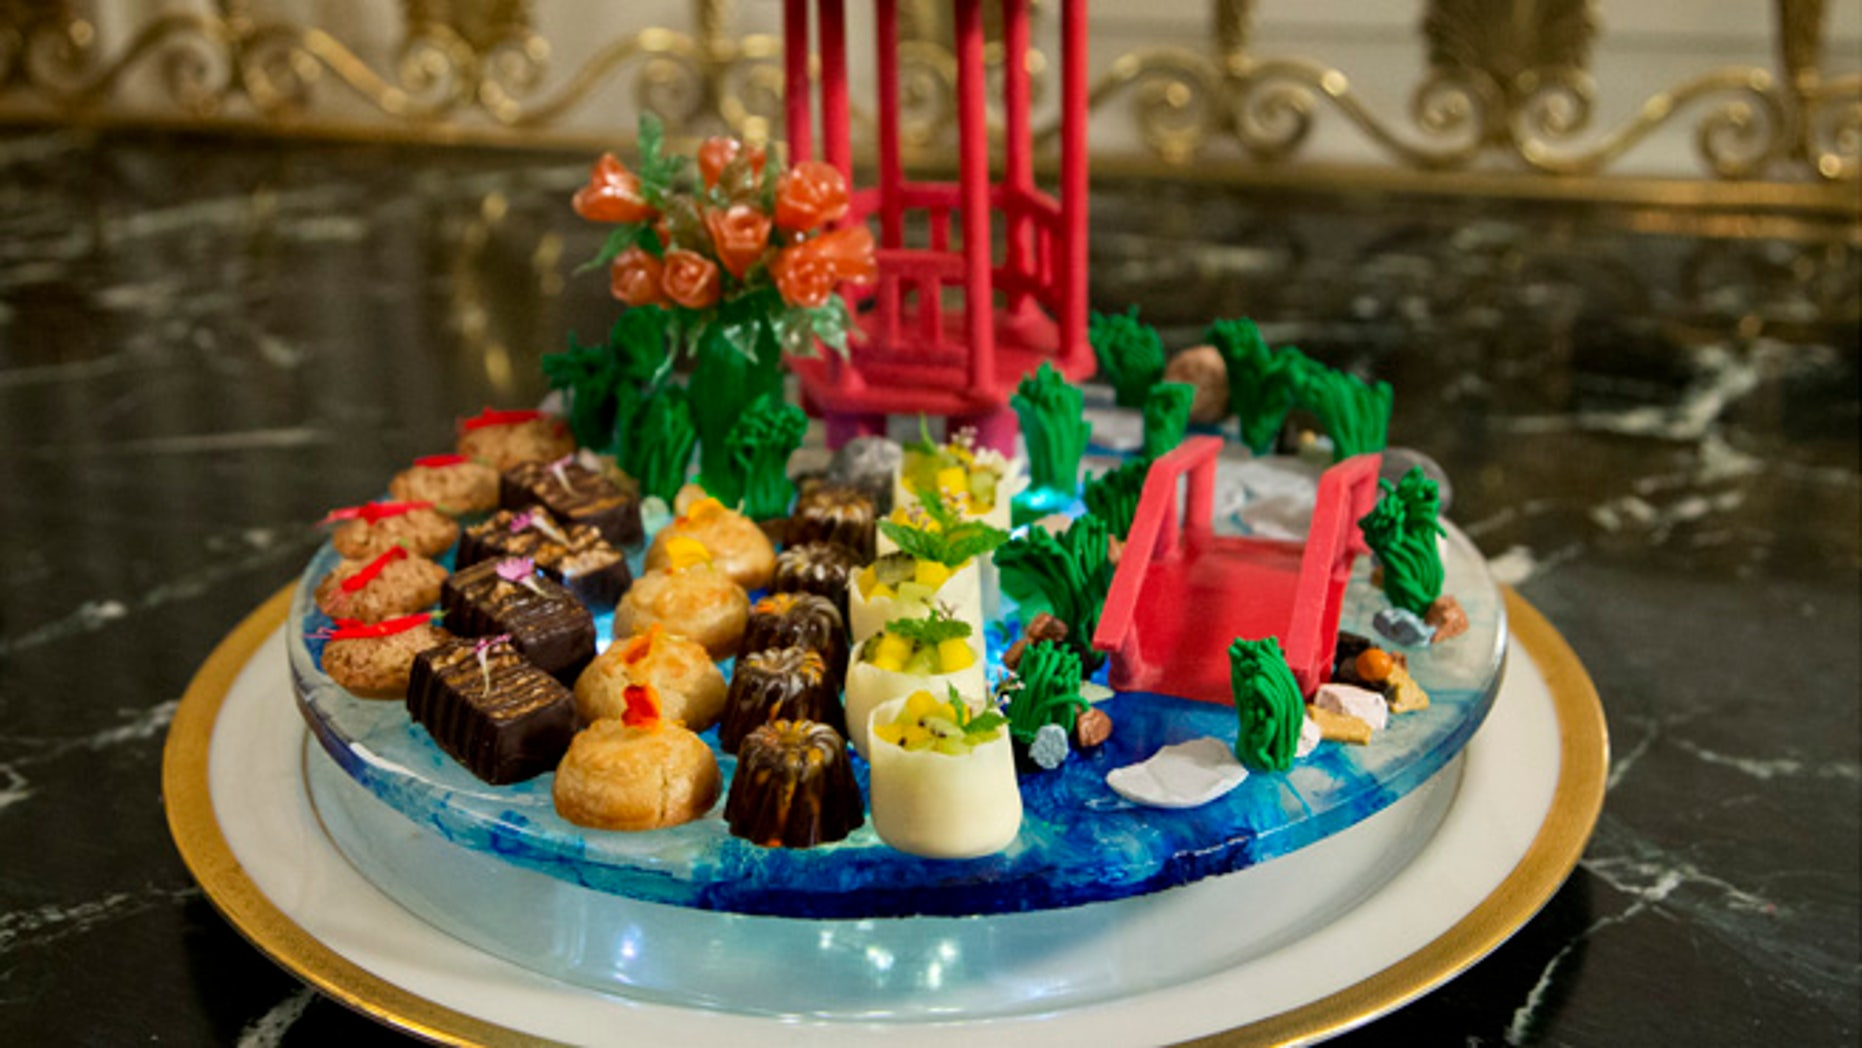 """Sept. 24, 2015: The dessert called """"a stroll through the garden"""" composed of handmade chocolate pavilion and bridge, pulled sugar roses, and white lotus flowers, that symbolize good fortune, is shown during a preview in the State Dining Room of White House in Washington for the state dinner of the visiting Chinese President Xi Jinping.(AP)"""